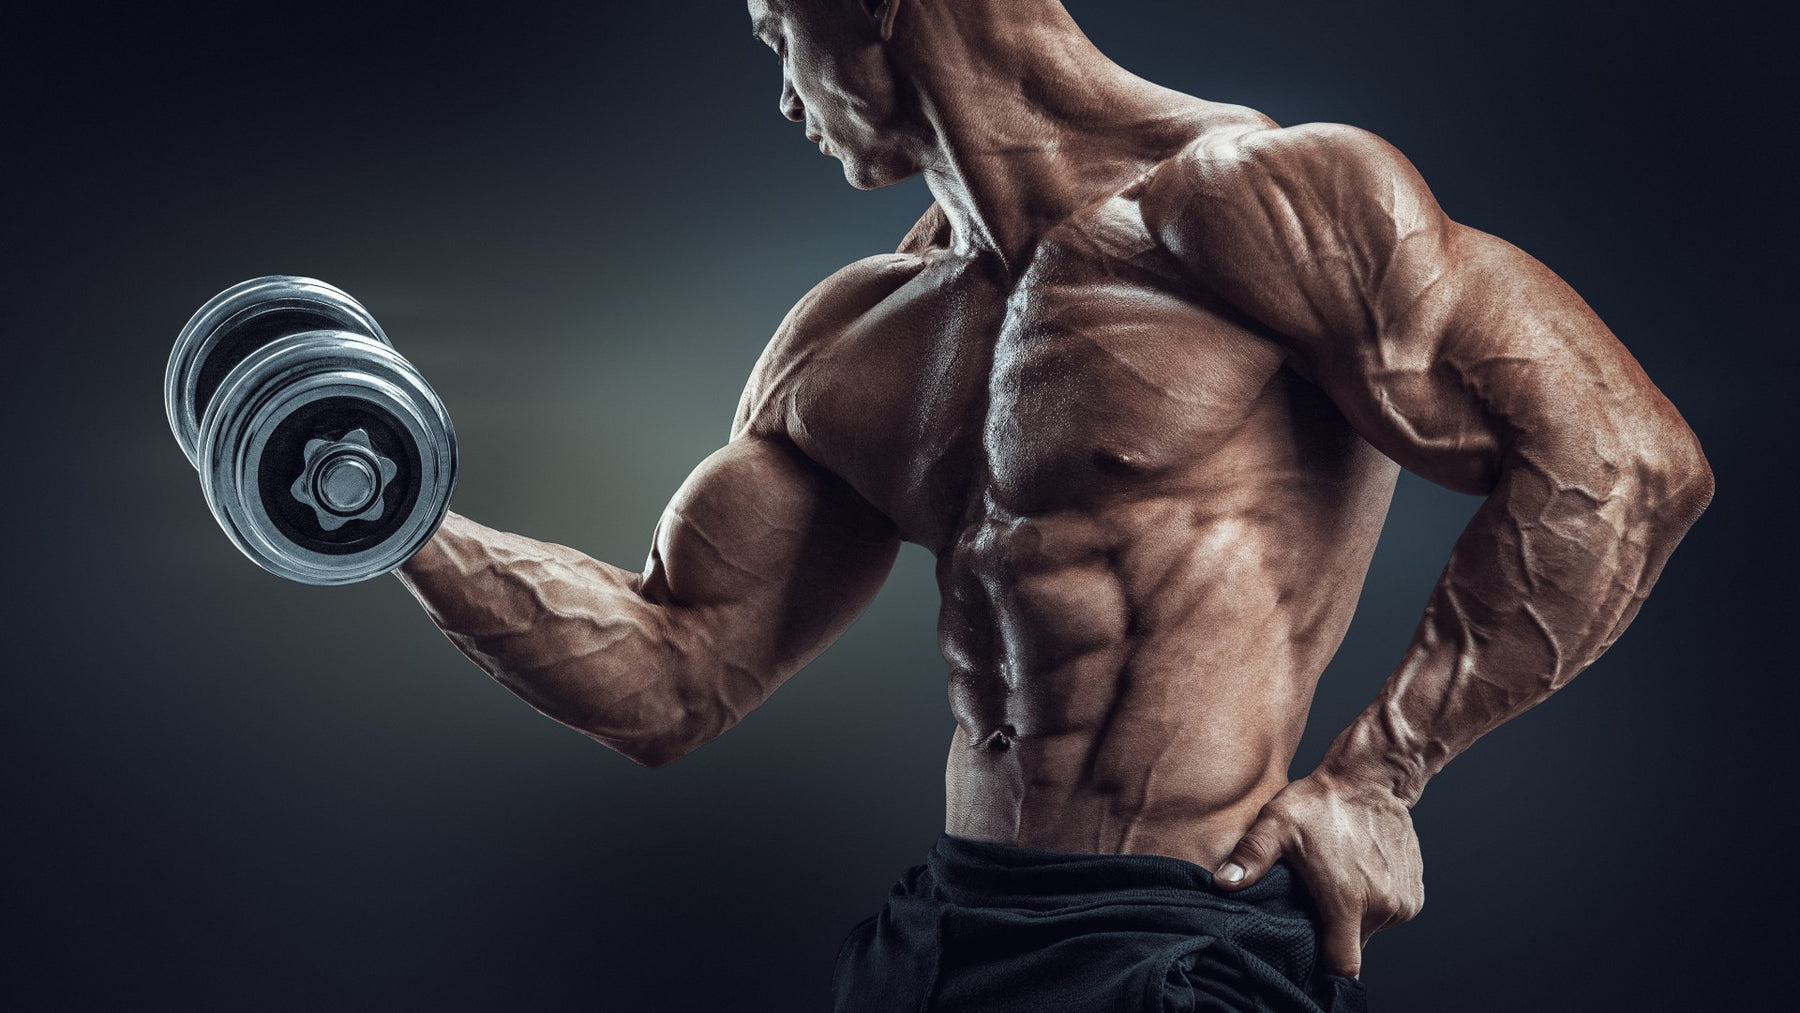 4 Ignored Muscles You Should Train For a Symmetrical Physique